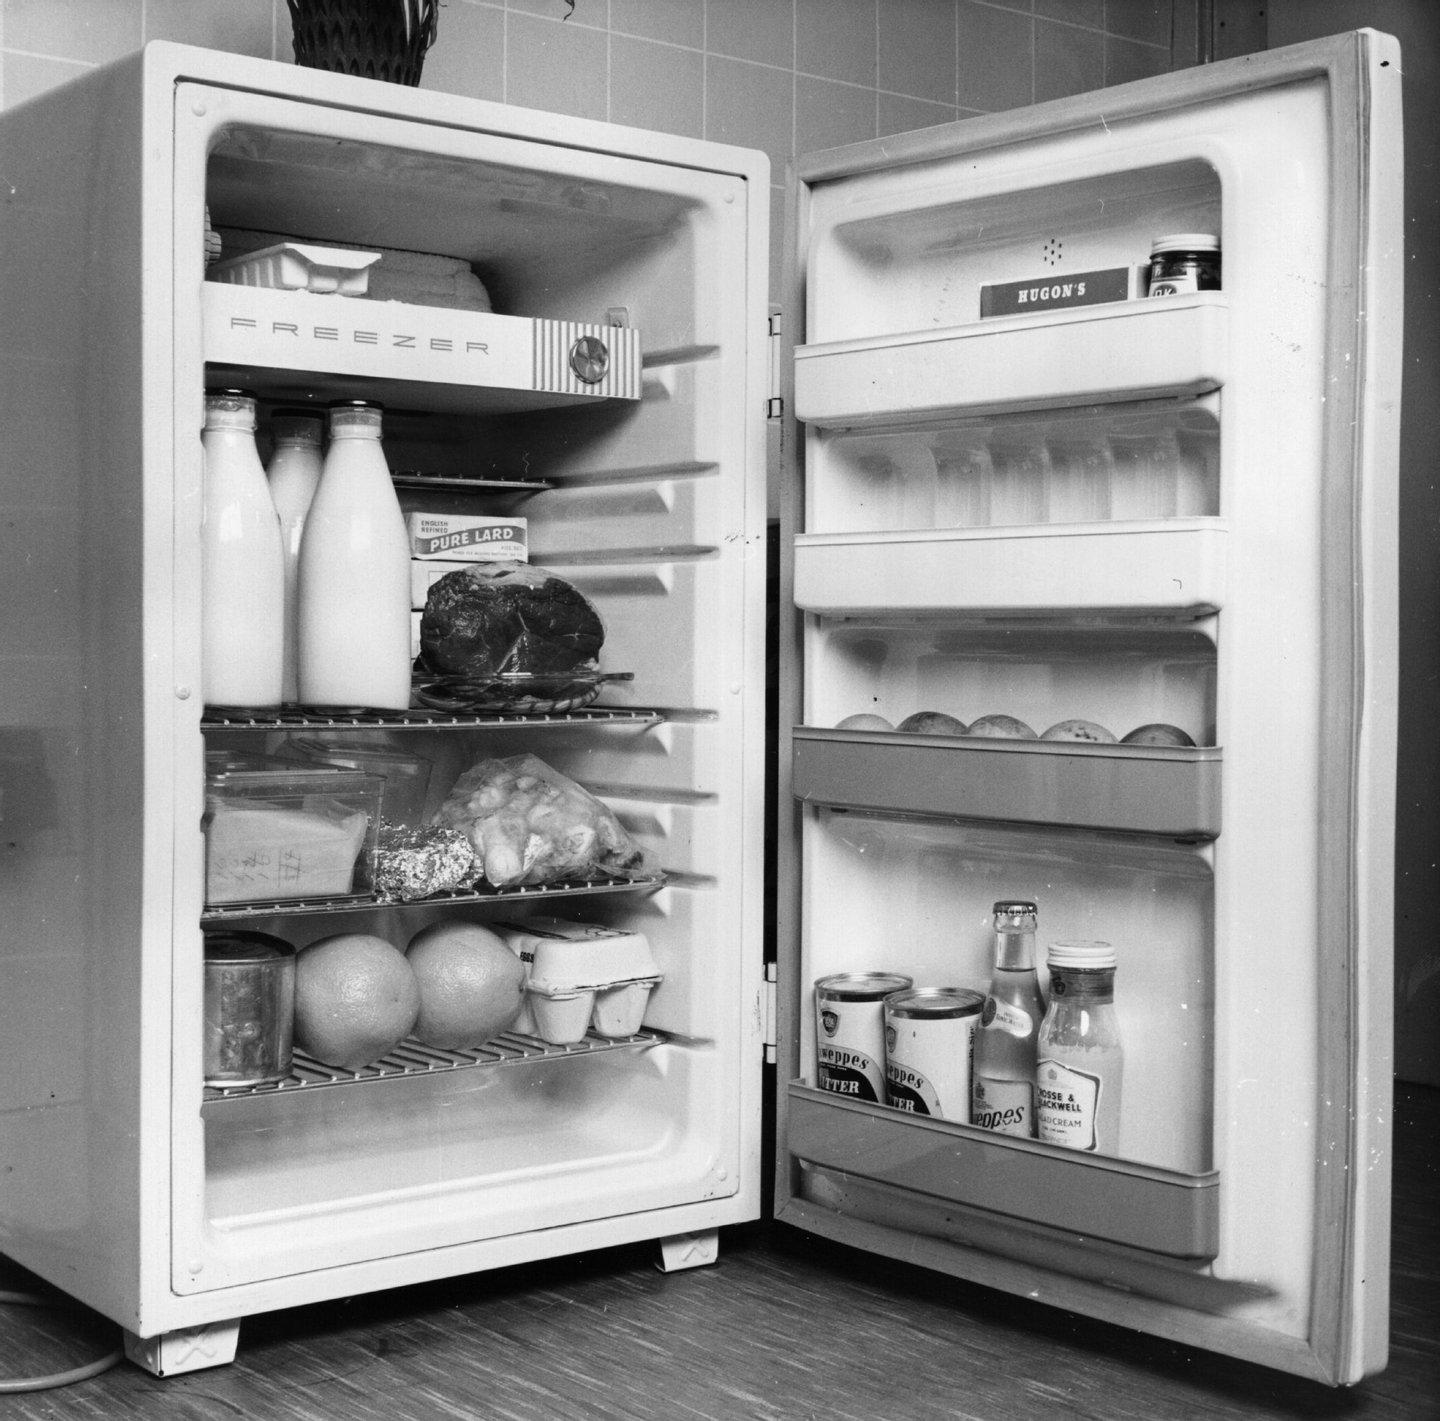 An open refrigerator full of food.   (Photo by Fox Photos/Getty Images)